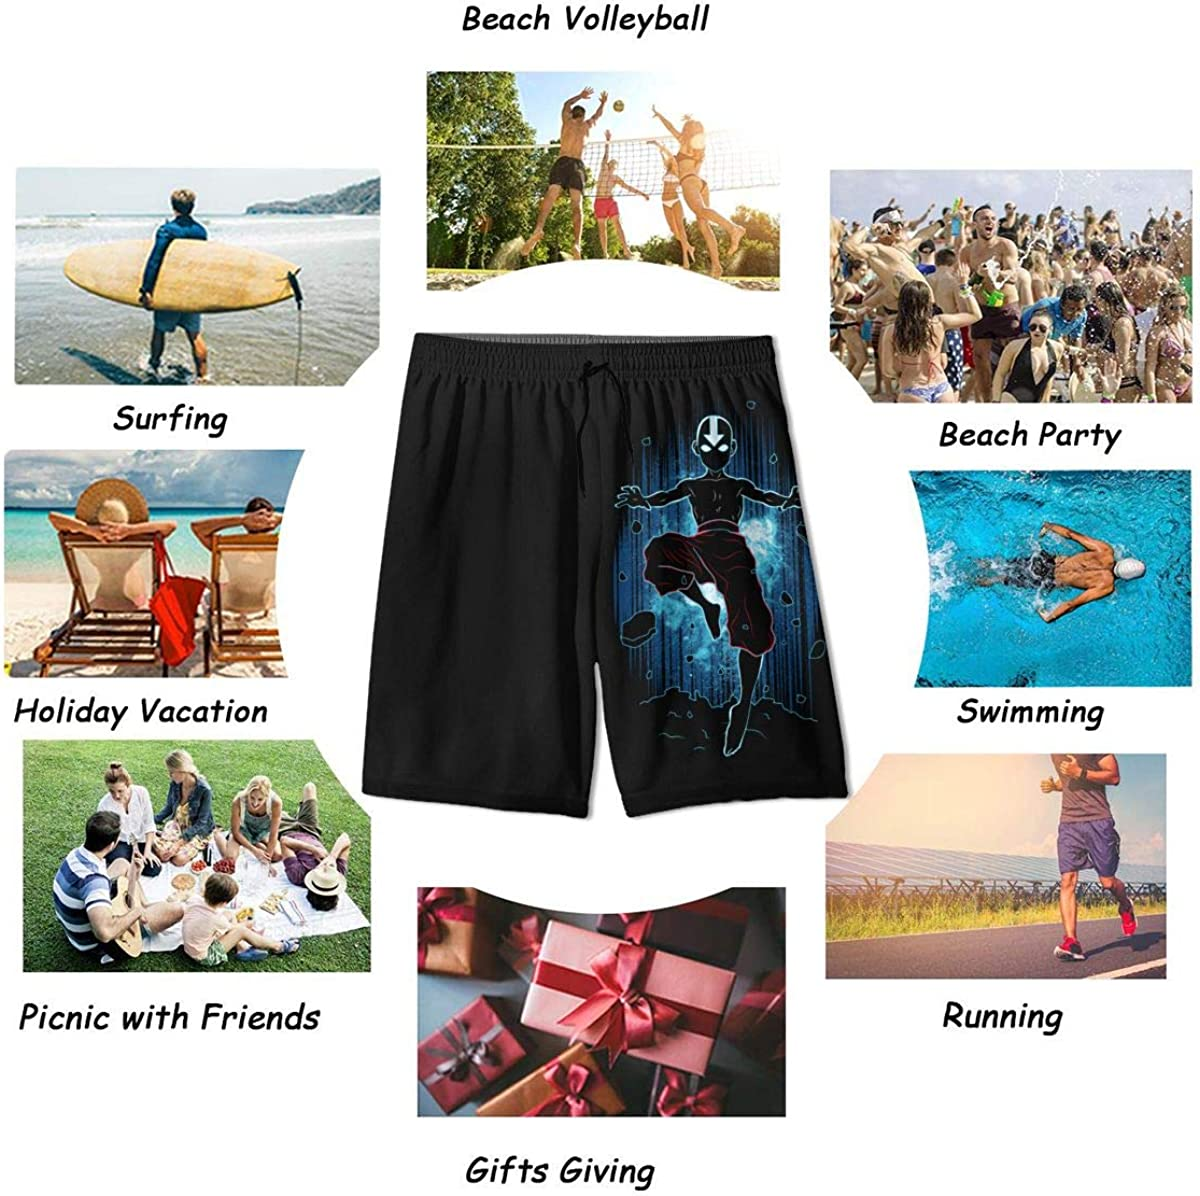 Yaoxin Ava-Tar The Last Legend Air-Bender of Korra A-ANG Youth Swim Trunks Quick Dry Teen Board Shorts Boys Bathing Suits